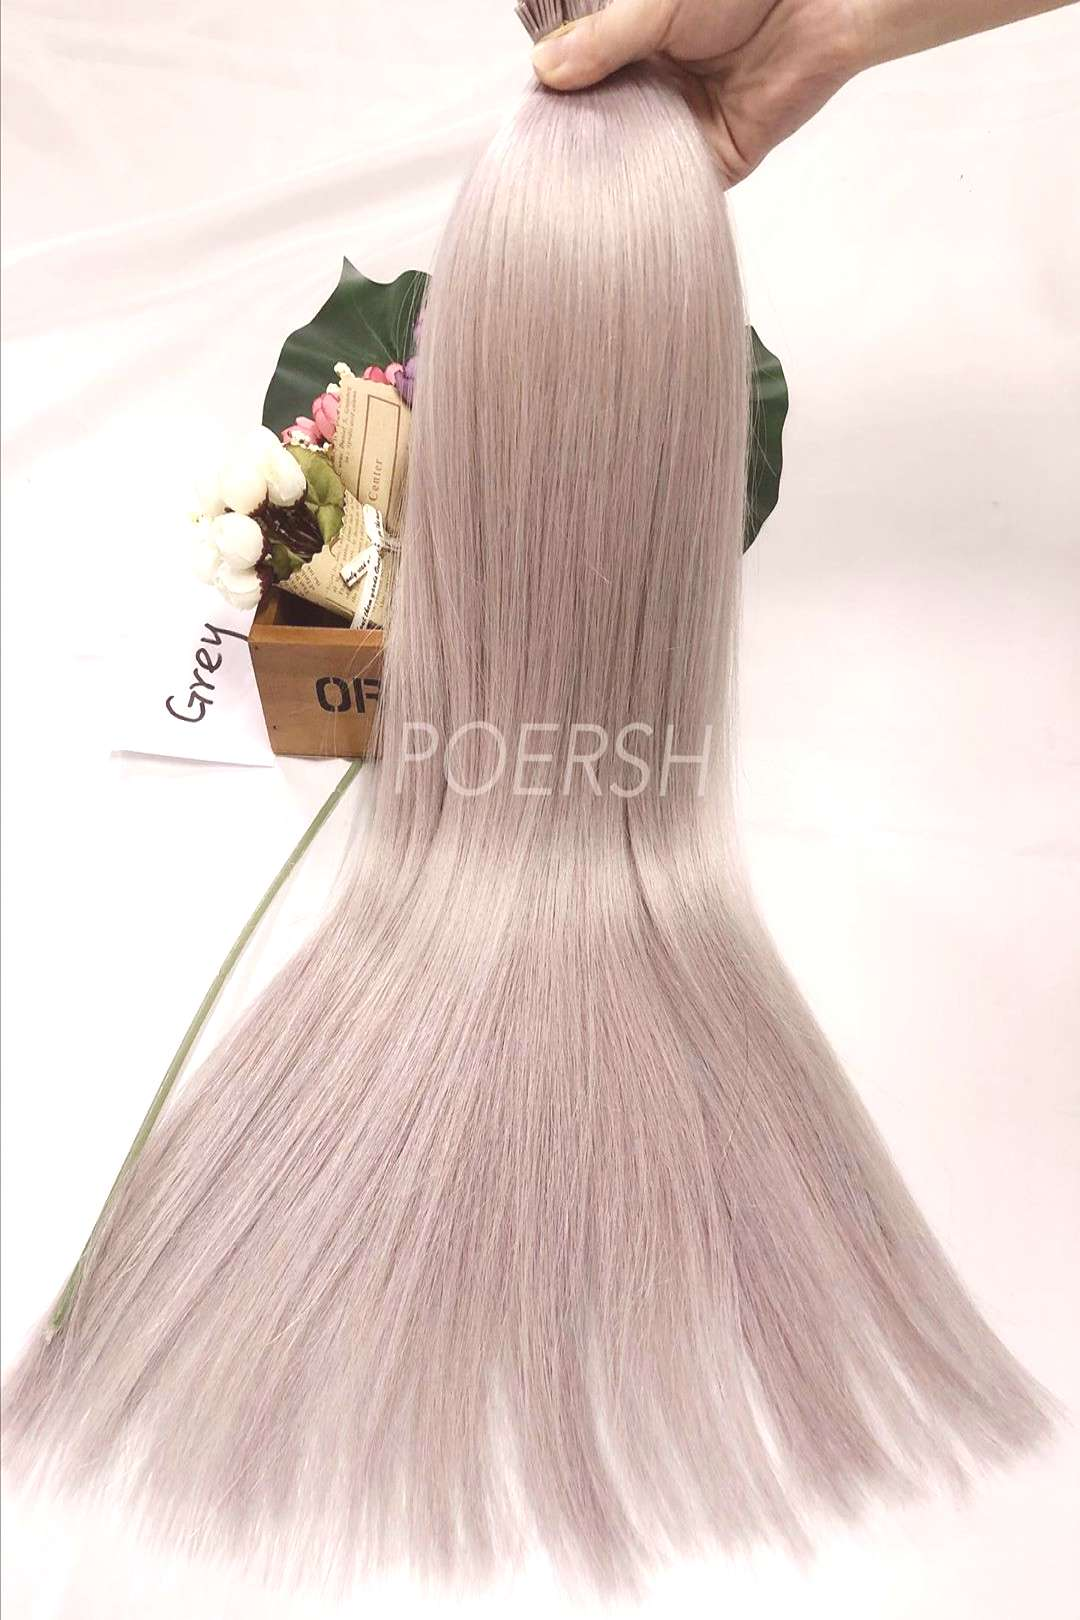 Unprocessed Virgin Human Hair on April 20 2020 one or more people